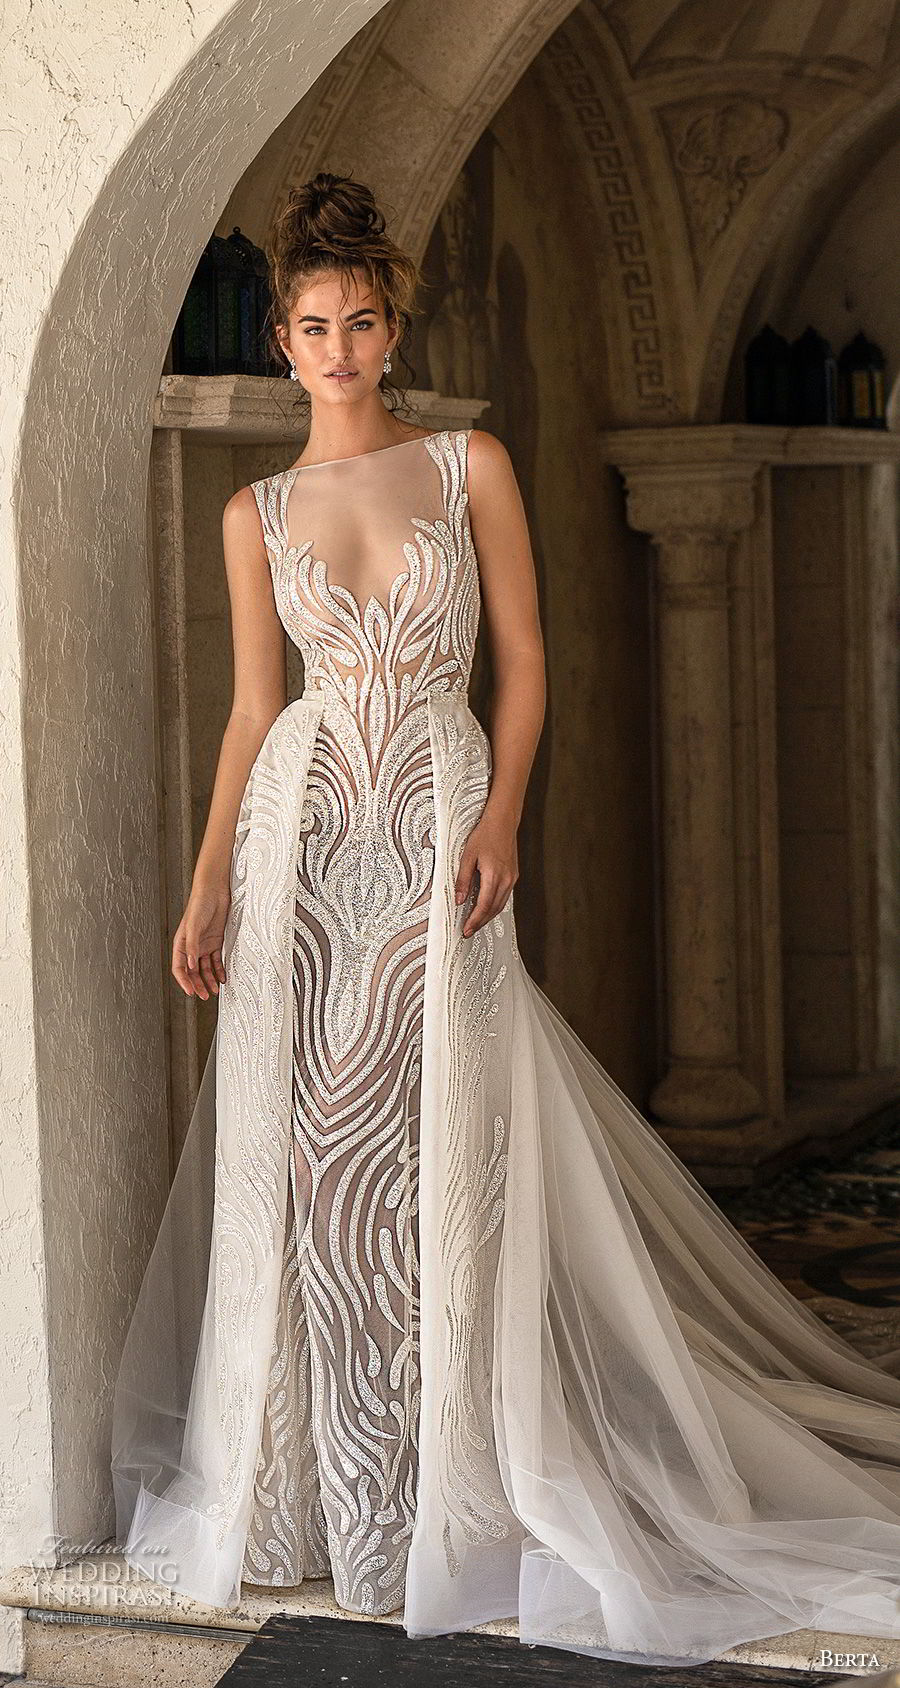 berta spring 2019 bridal sleeveless illusion bateau scoop neckline full embellishment elegant glamorous fit and flare wedding dress a  line overskirt sheer button back medium train (12) mv